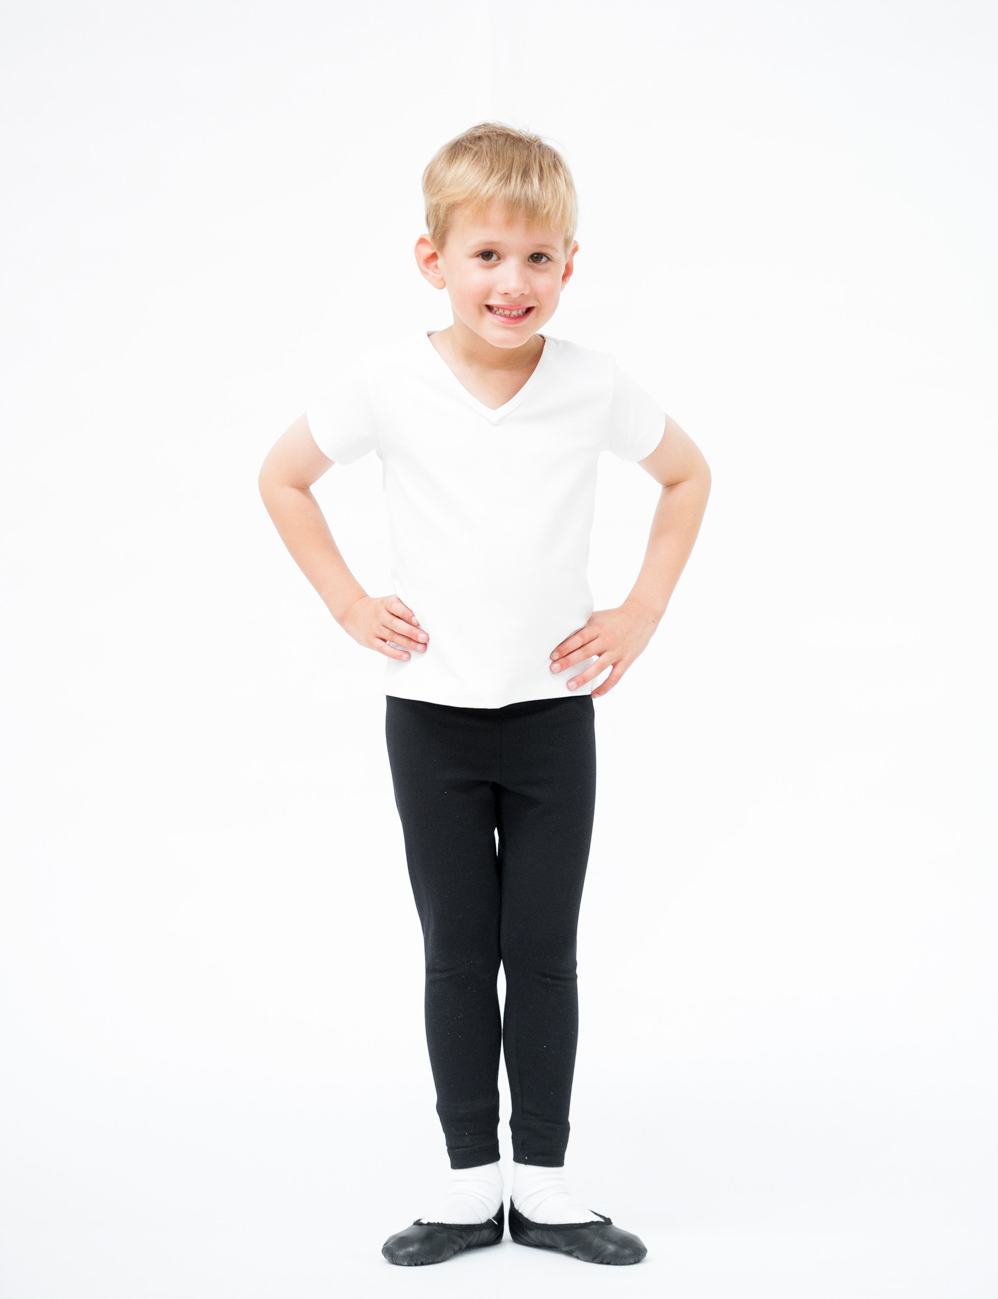 Boys Mathis Dance Studios uniform